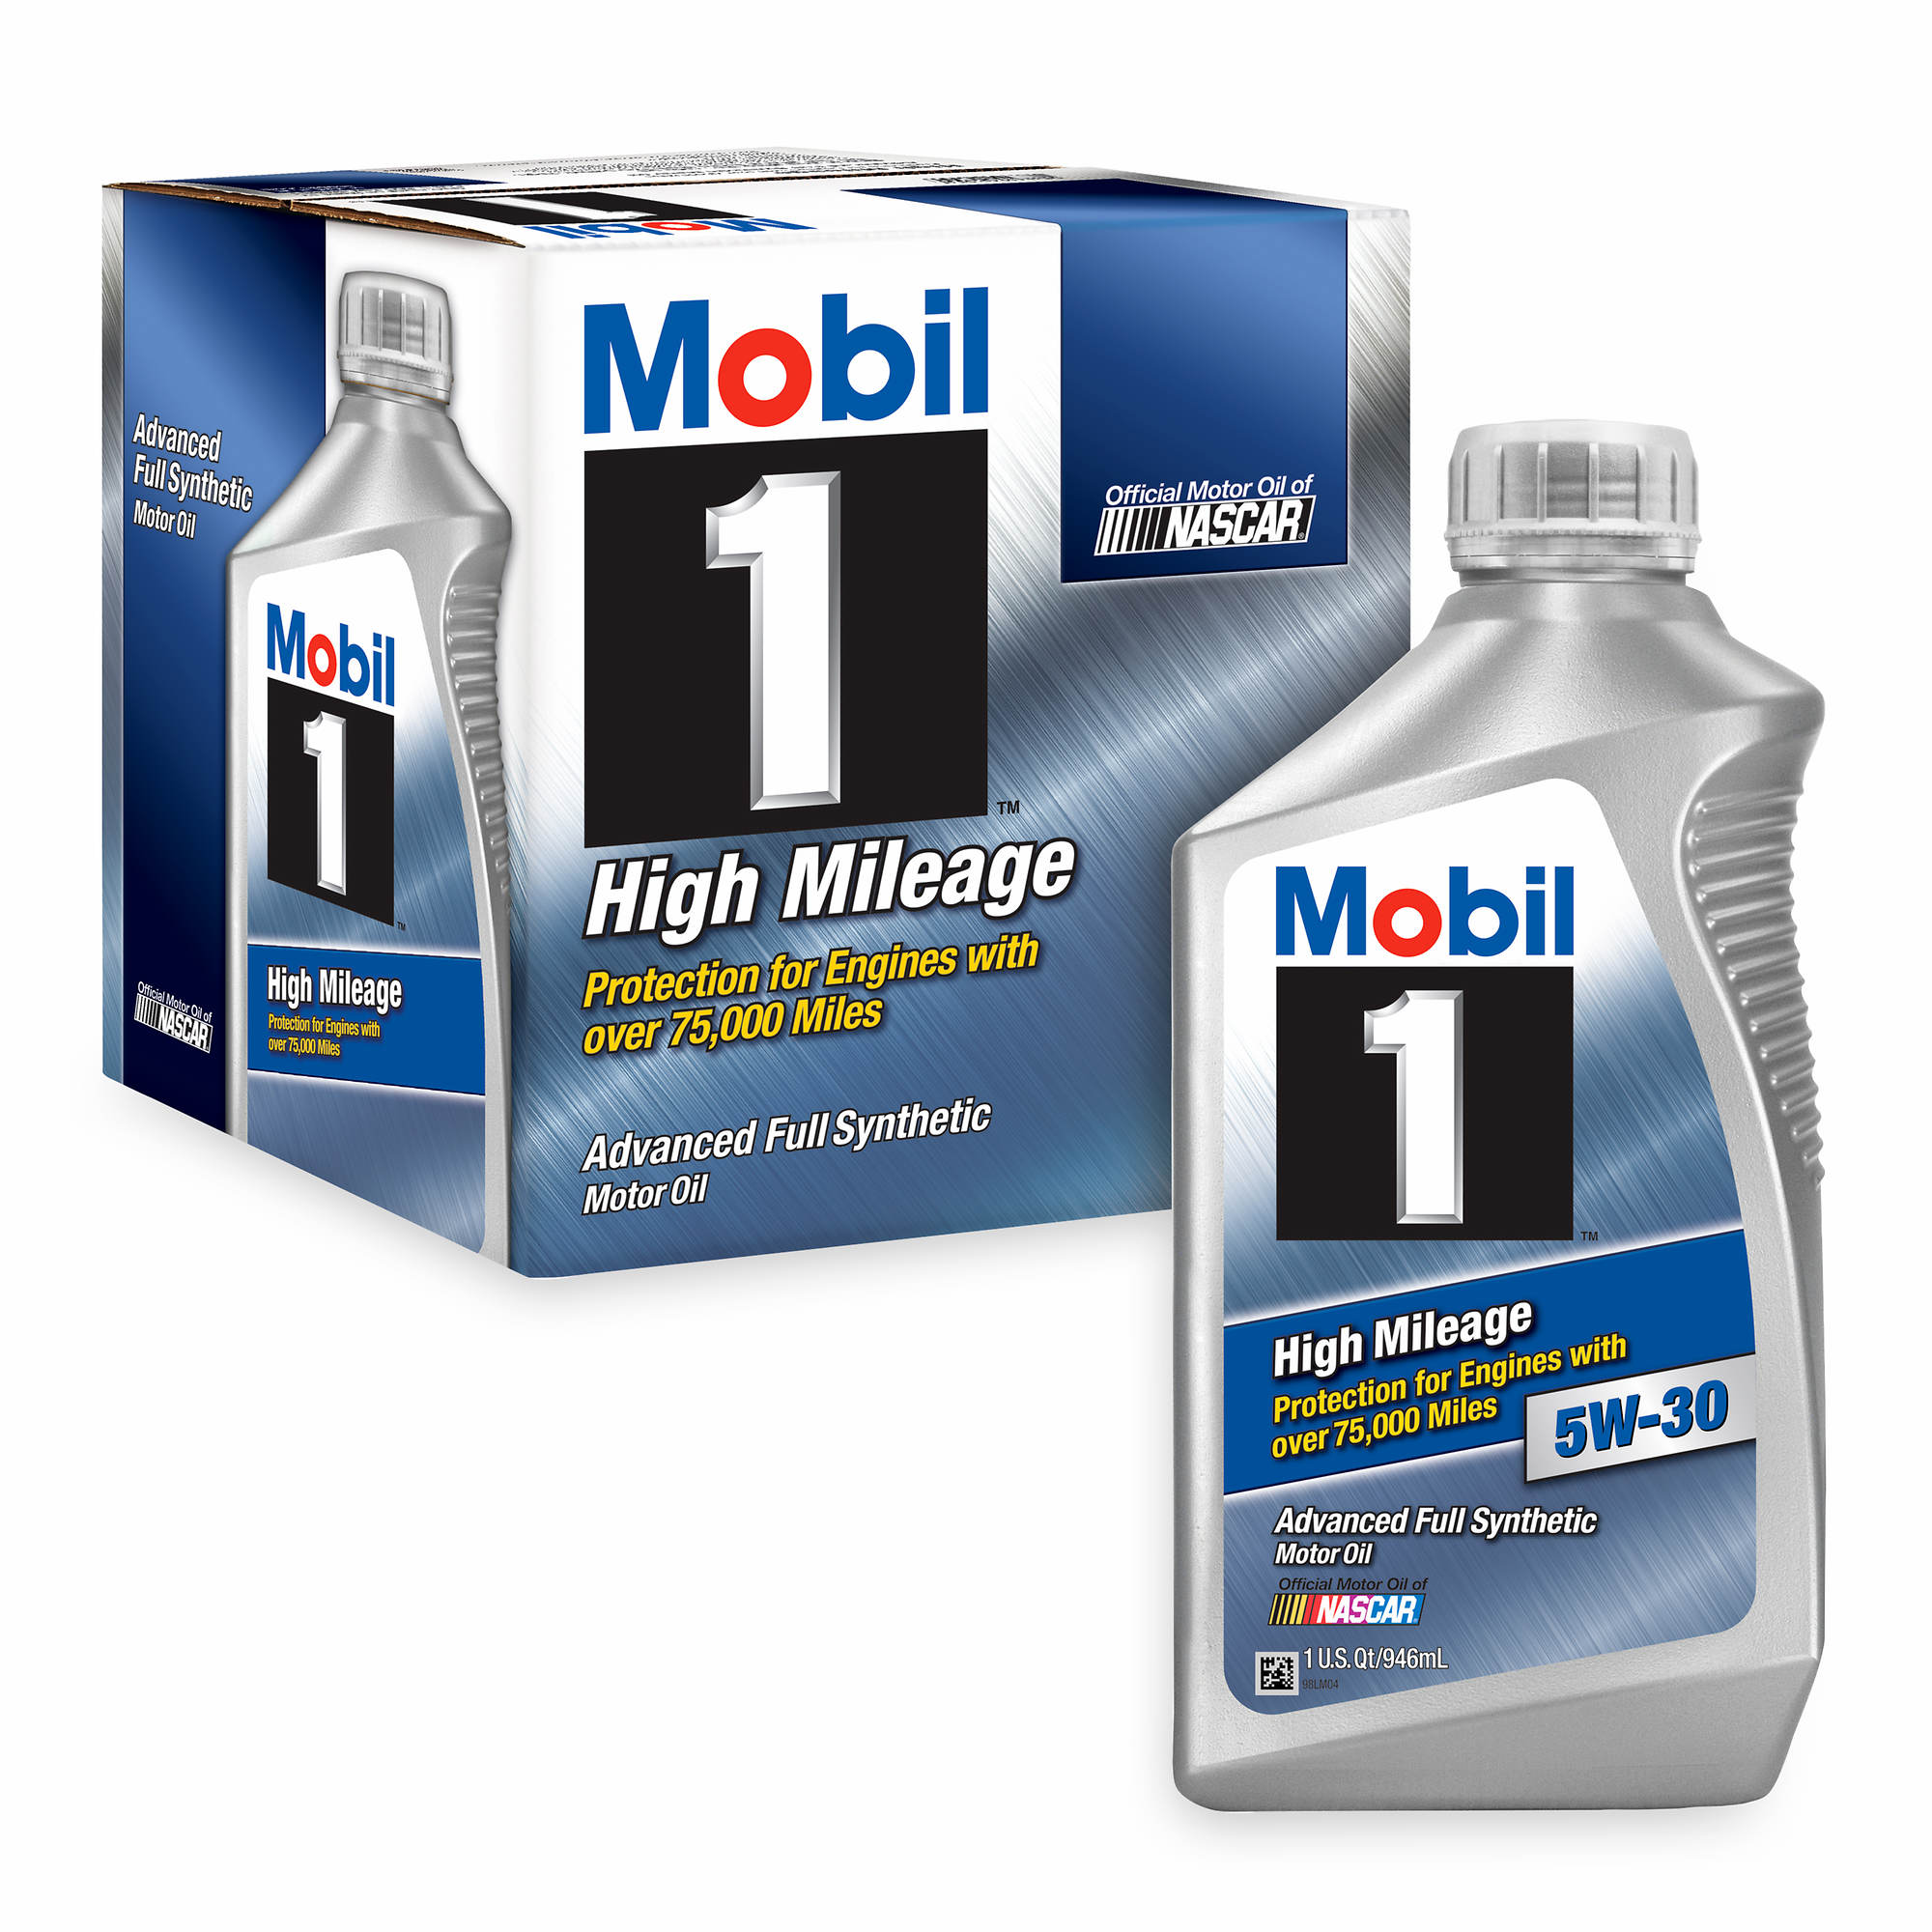 Mobil 1 5W30 High Mileage Synthetic Motor Oil, 6 pk./1 qt.